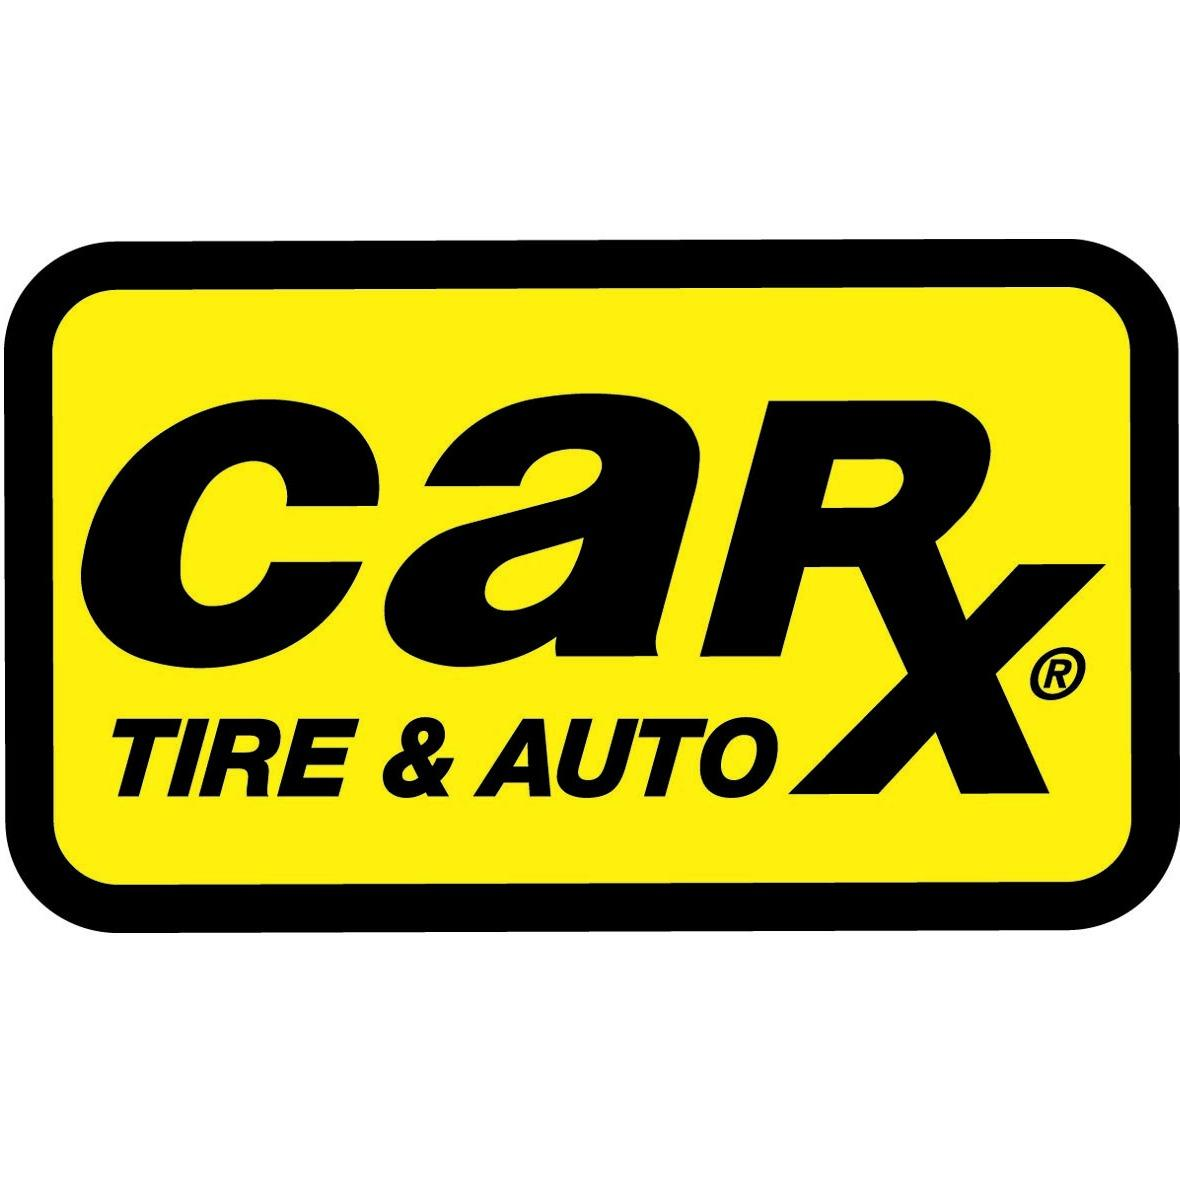 Car-X Tire & Auto - Cottage Grove, MN - Auto Body Repair & Painting